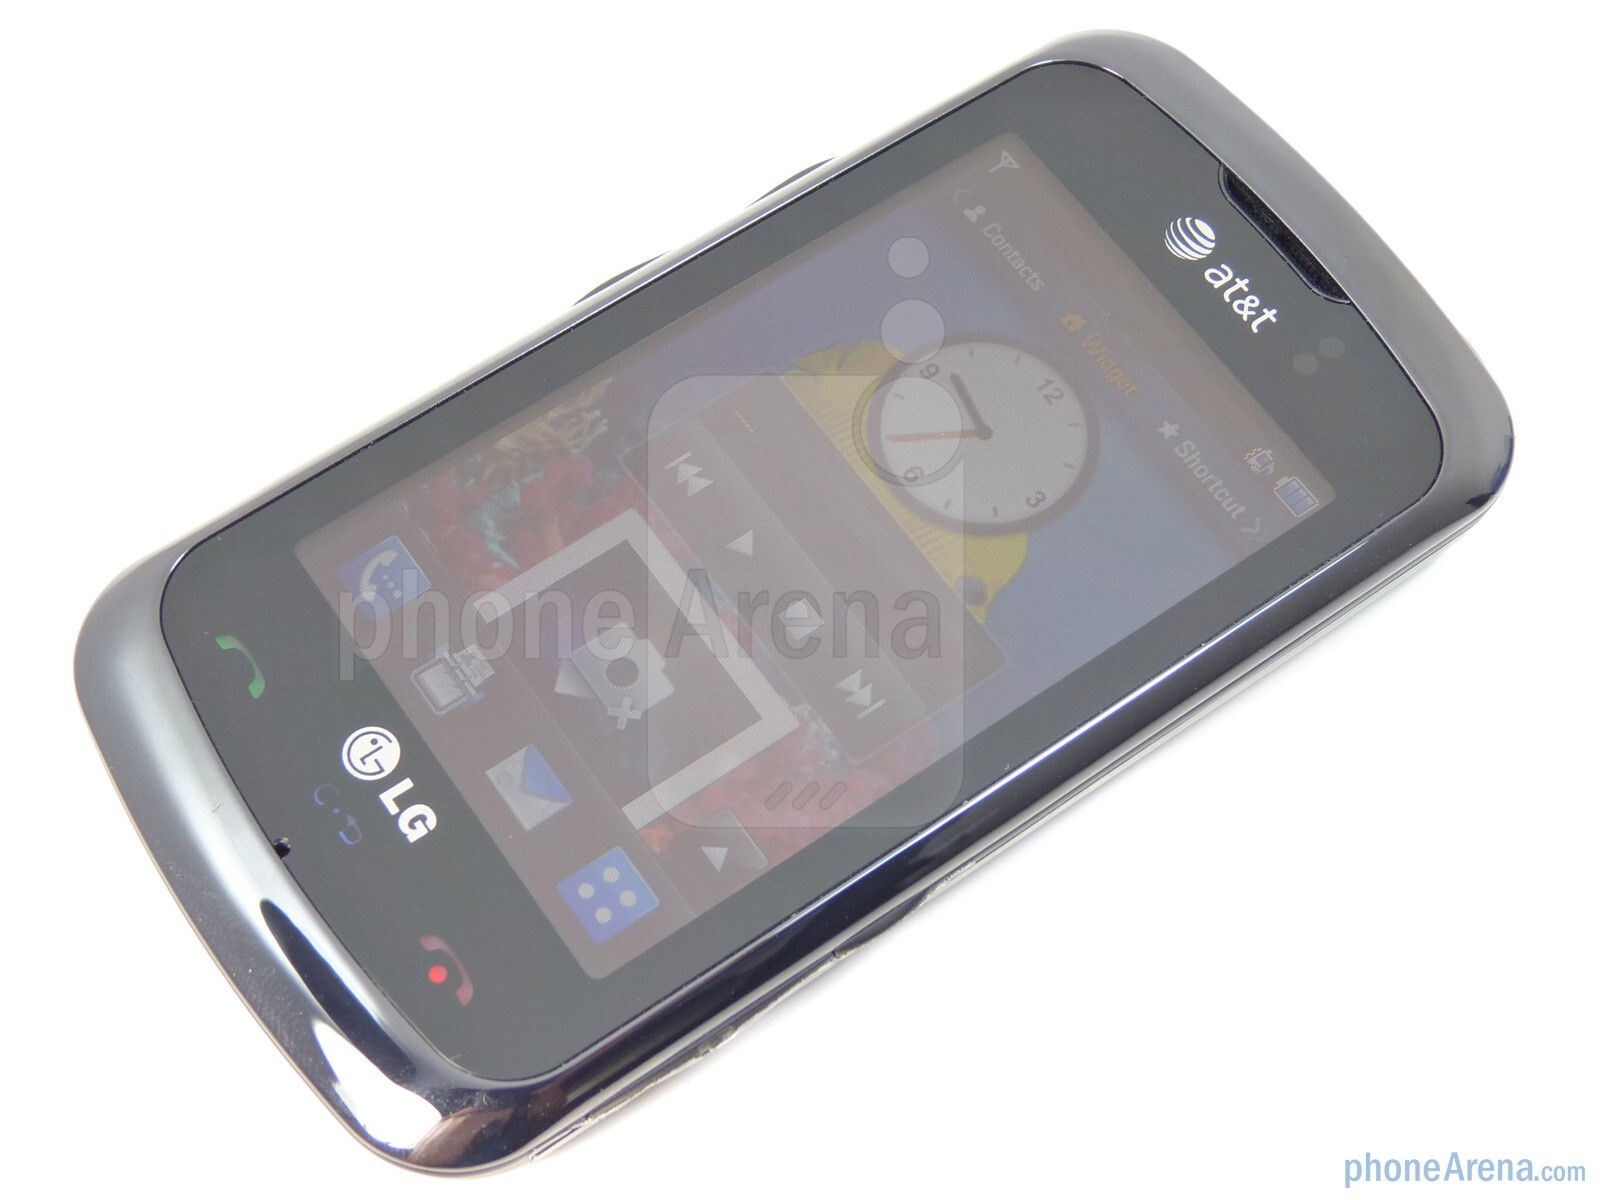 About How To Unlock An Lg Optimus Pattern From Metropcs How To  Apps